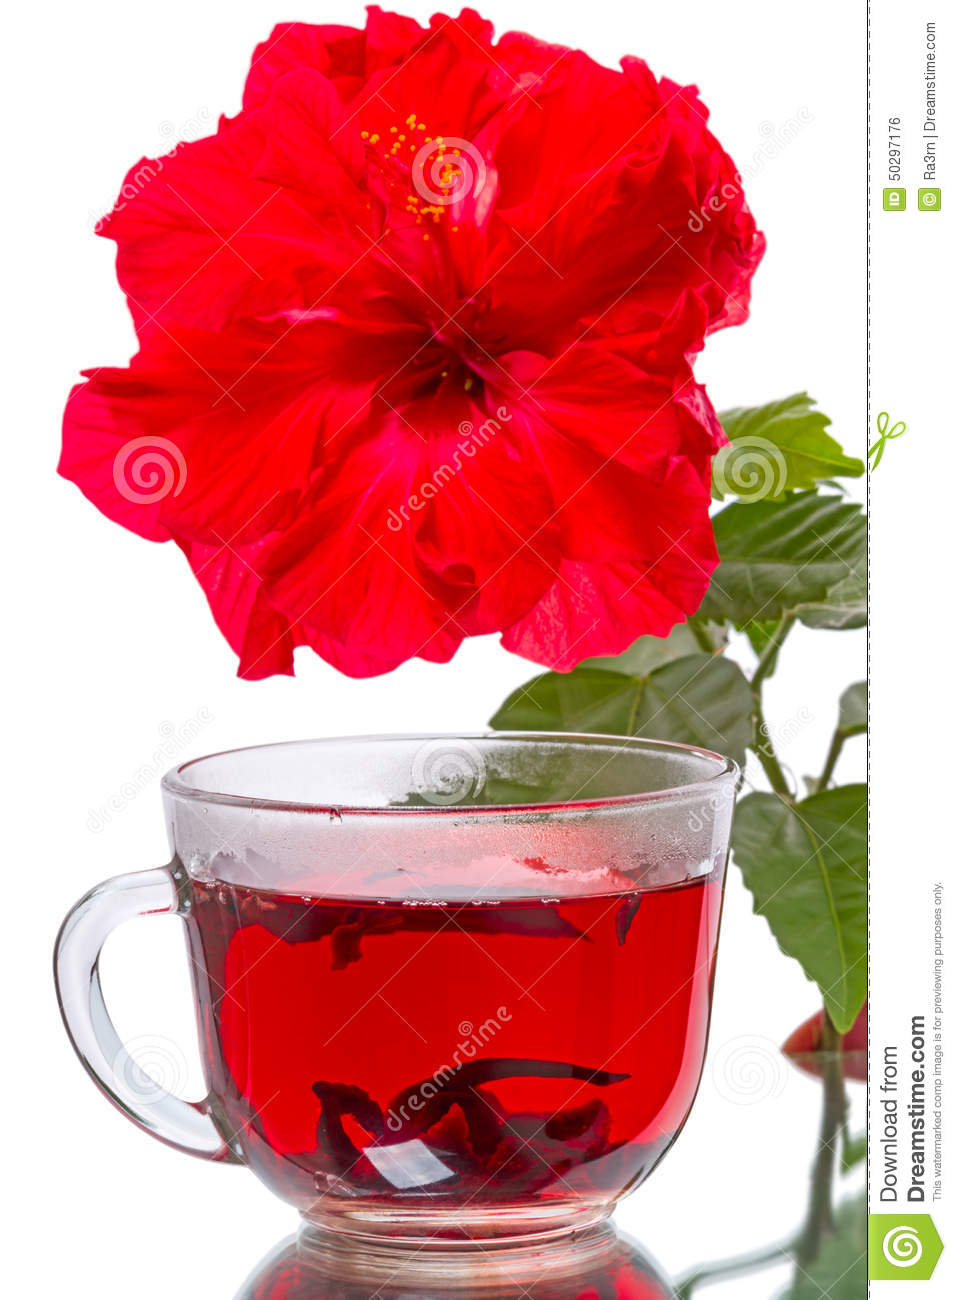 Hot tea and hibiscus flower stock photo image of isolated rosa download comp izmirmasajfo